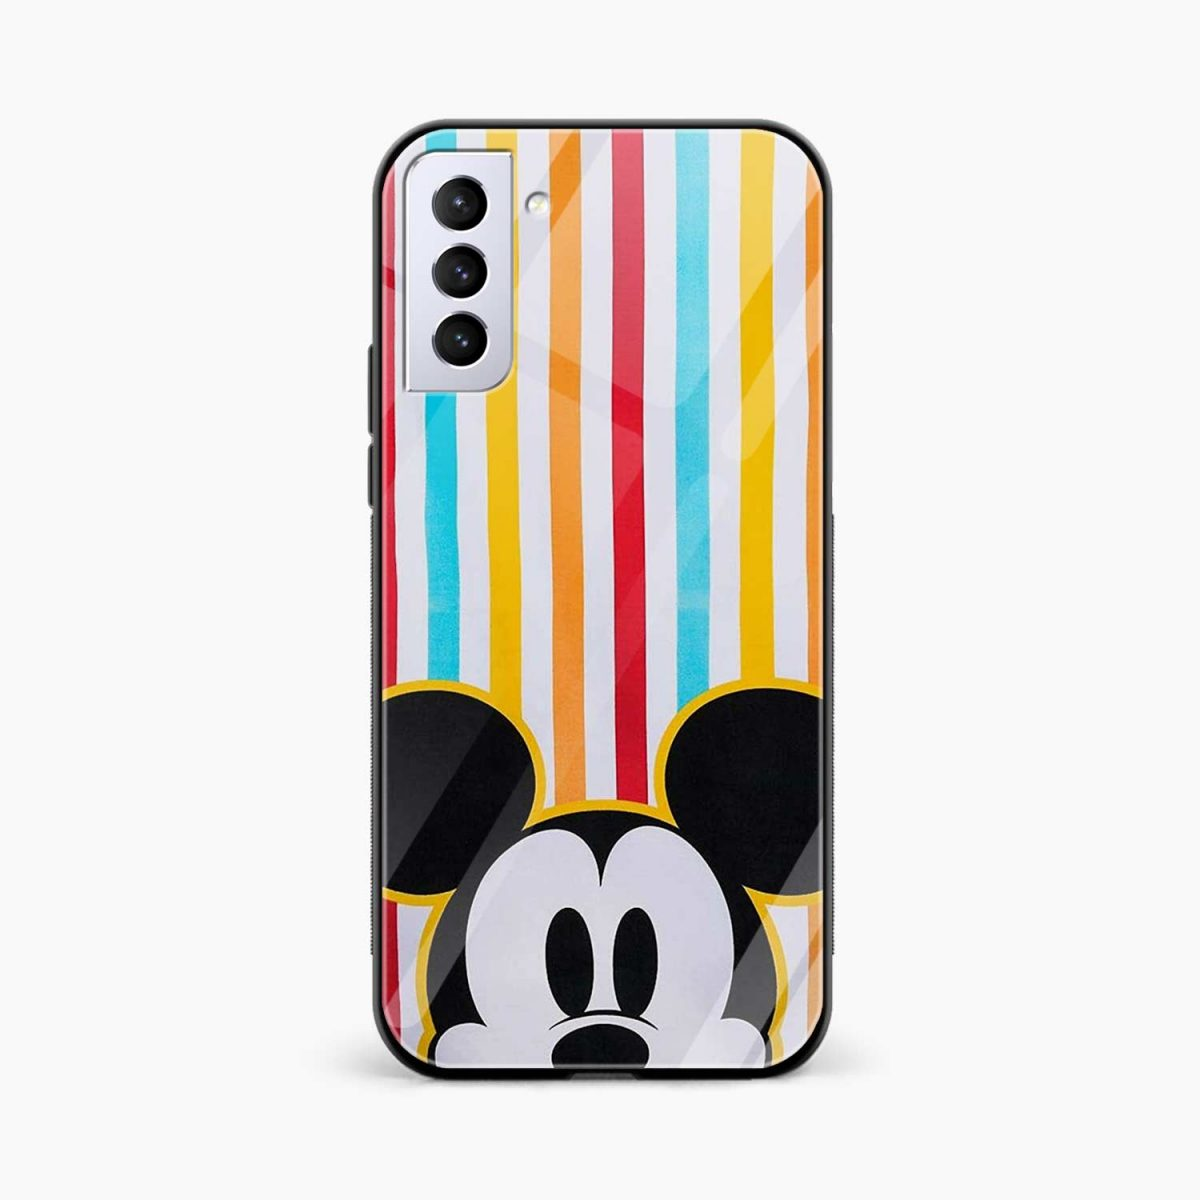 rigid spy mickey mouse front view samsung s21 plug back cover